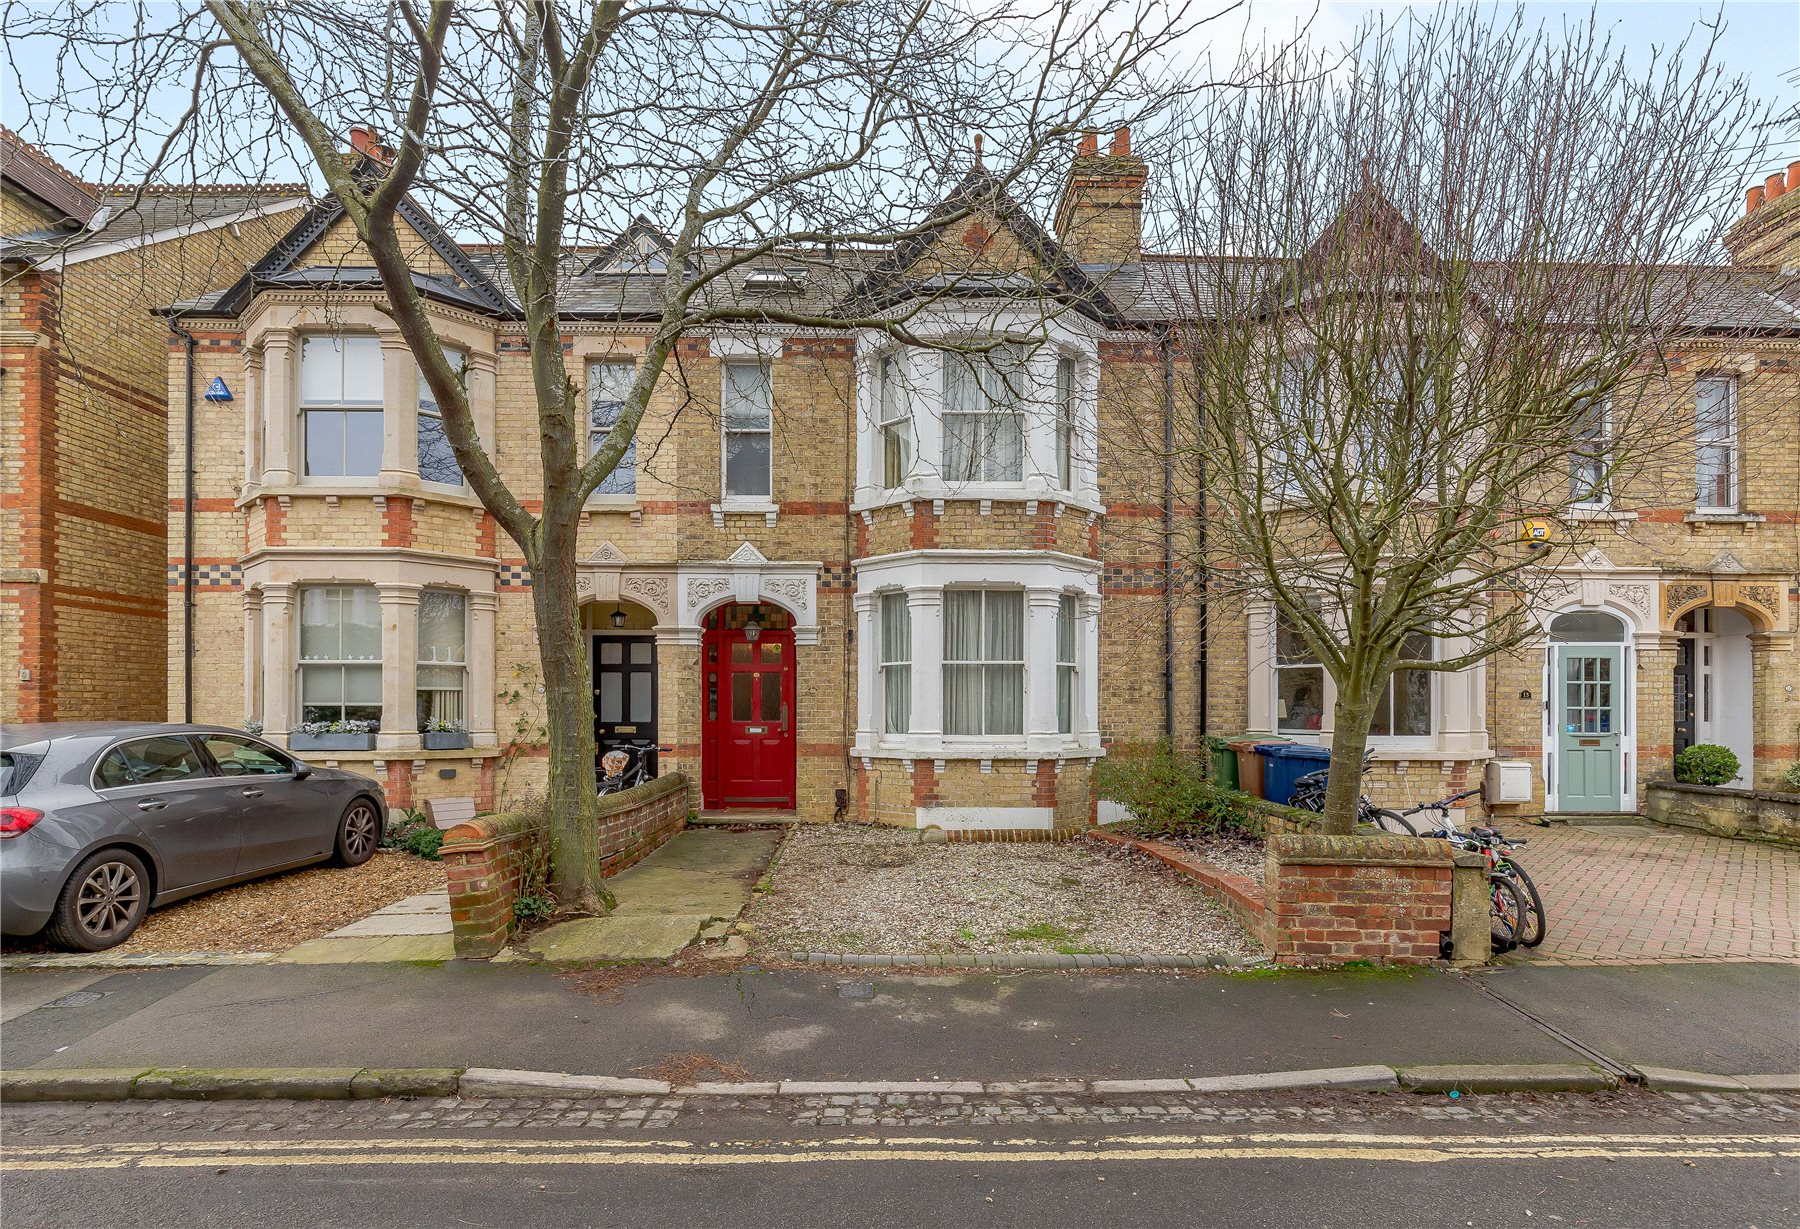 Thorncliffe Road, Summertown, Oxford, OX2